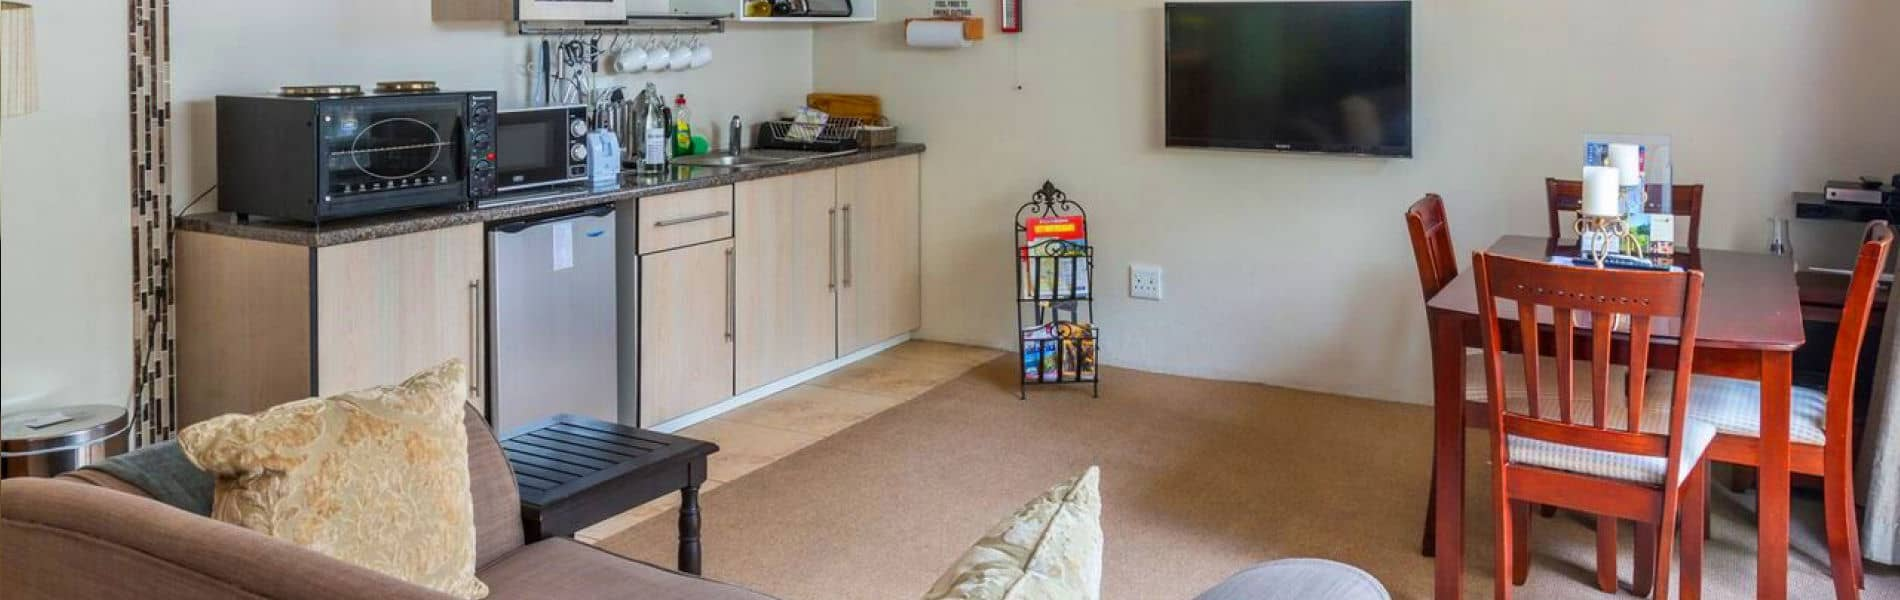 Three studio flatlets ideal for long stay Johannesburg accommodation